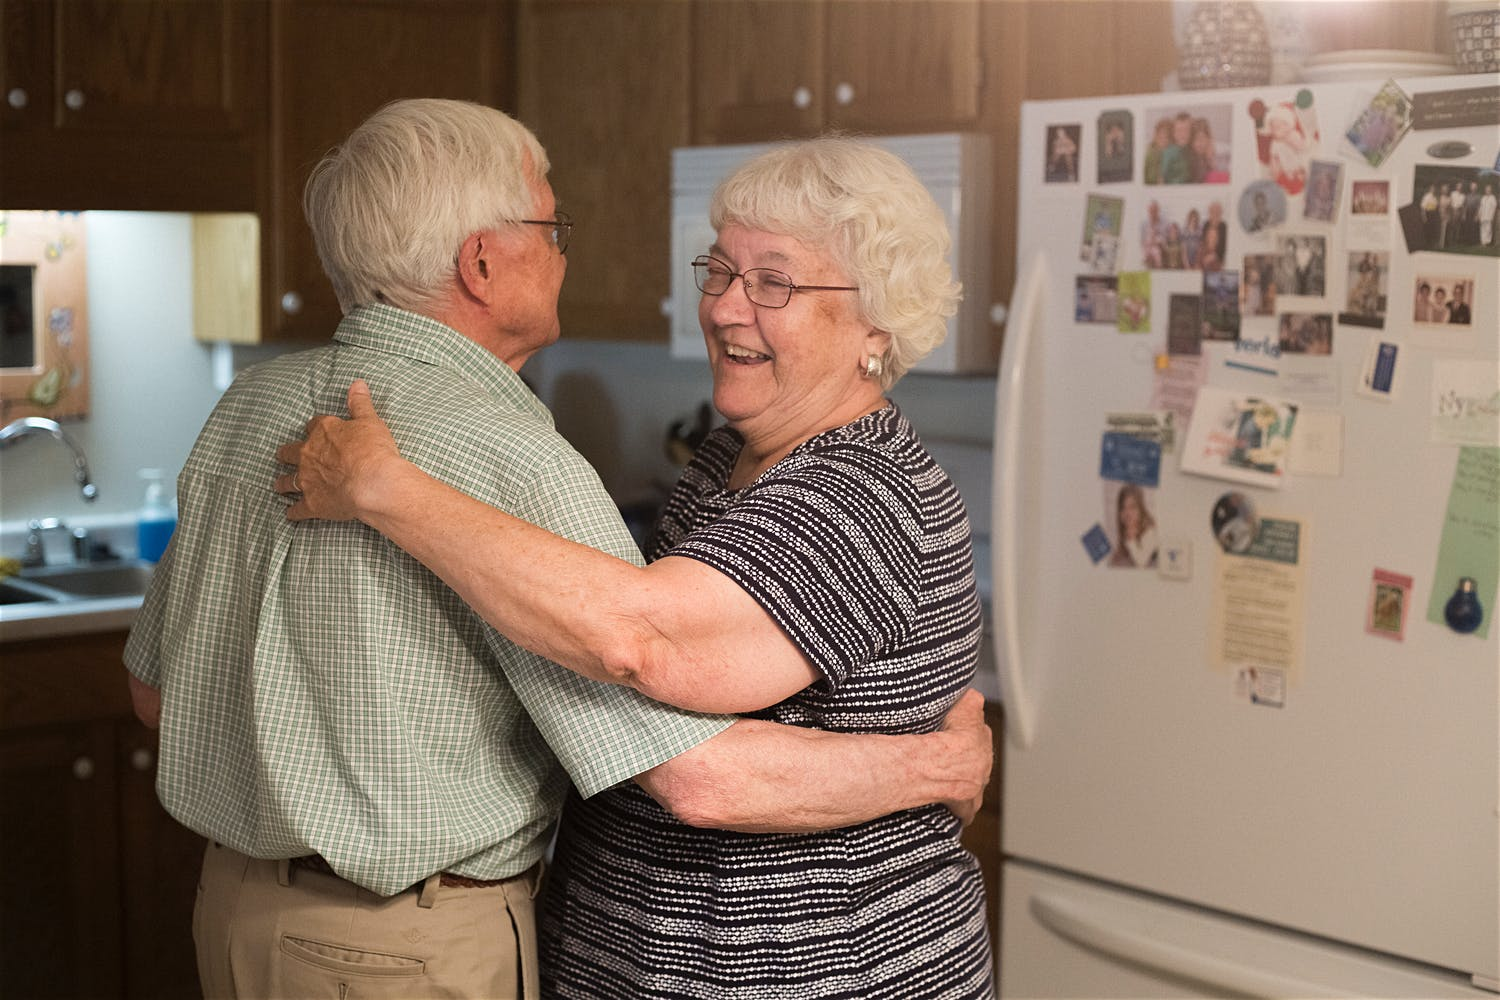 couple with gray hair dancing in the kitchen